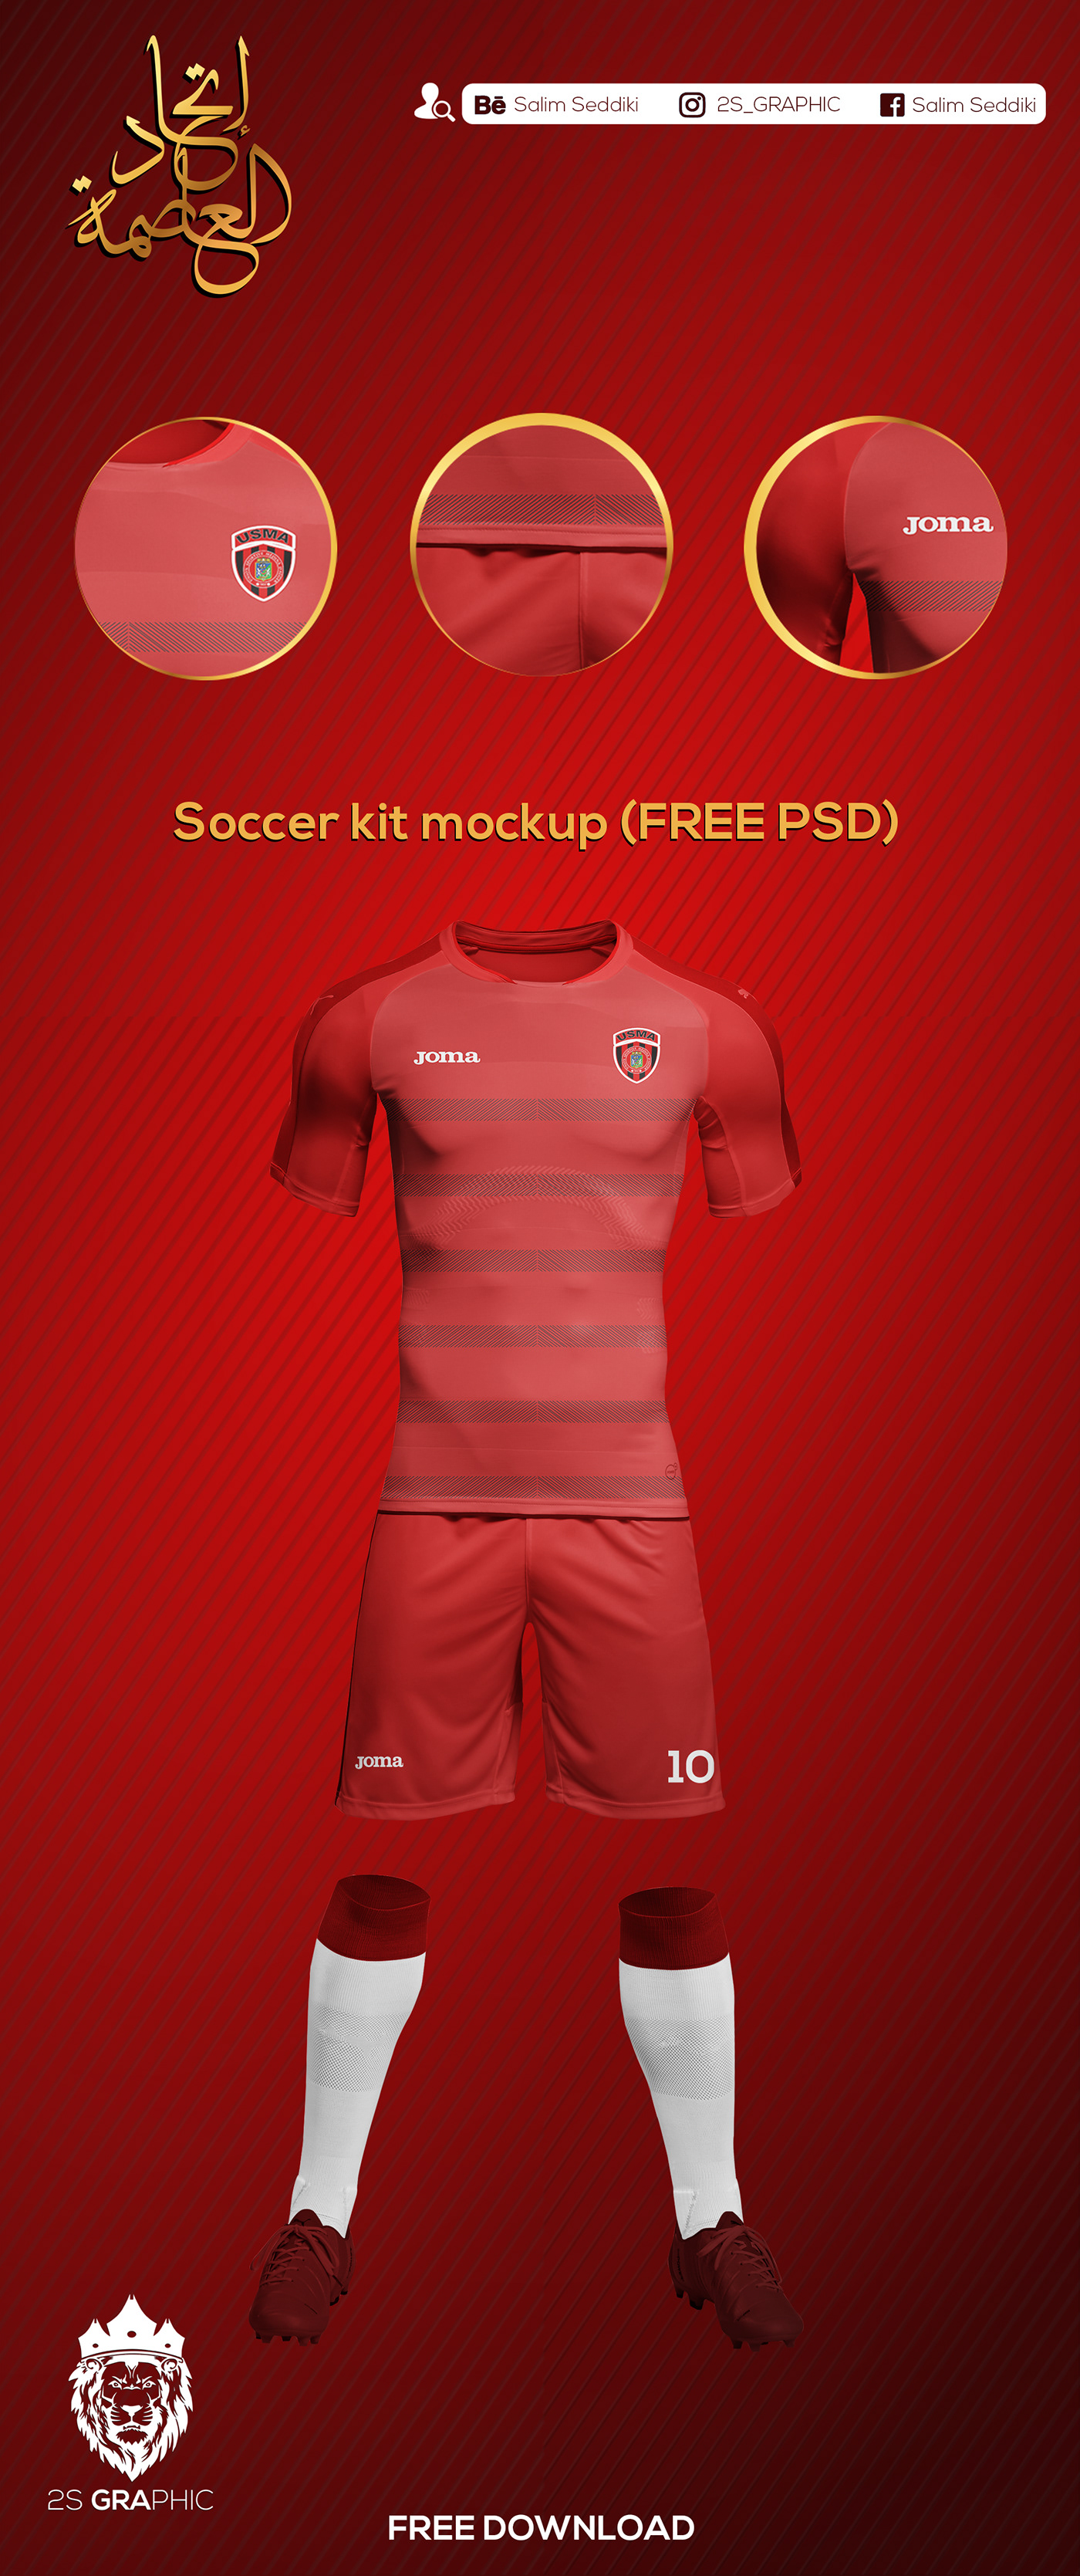 Mockup Football Kit Free Download On Behance